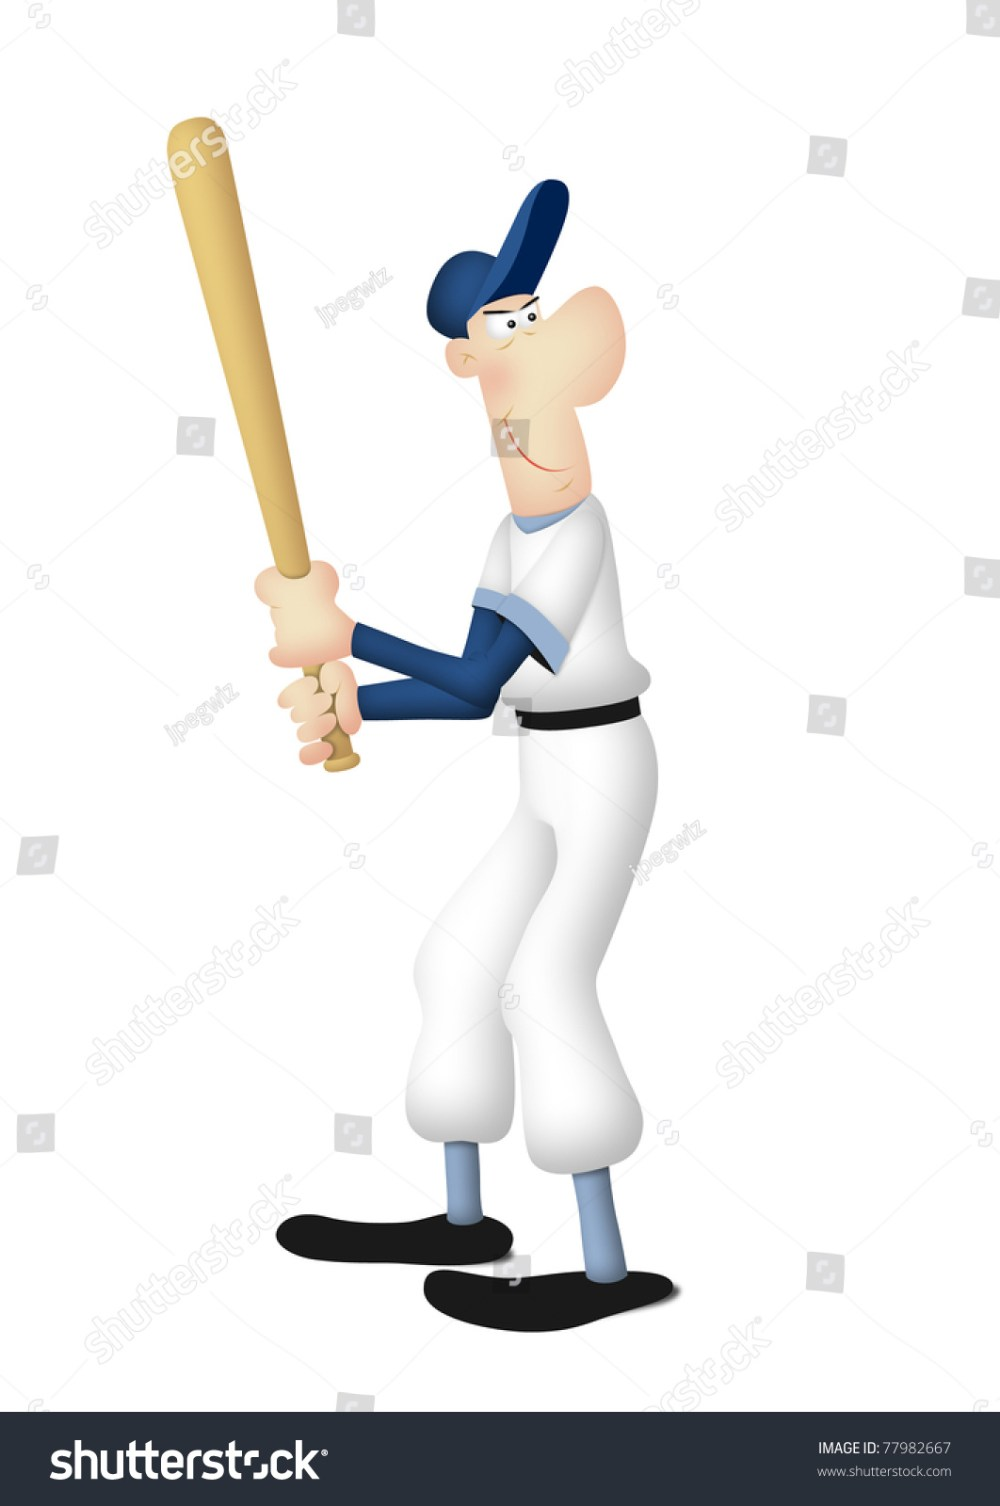 medium resolution of cartoon of baseball batter in batting pose